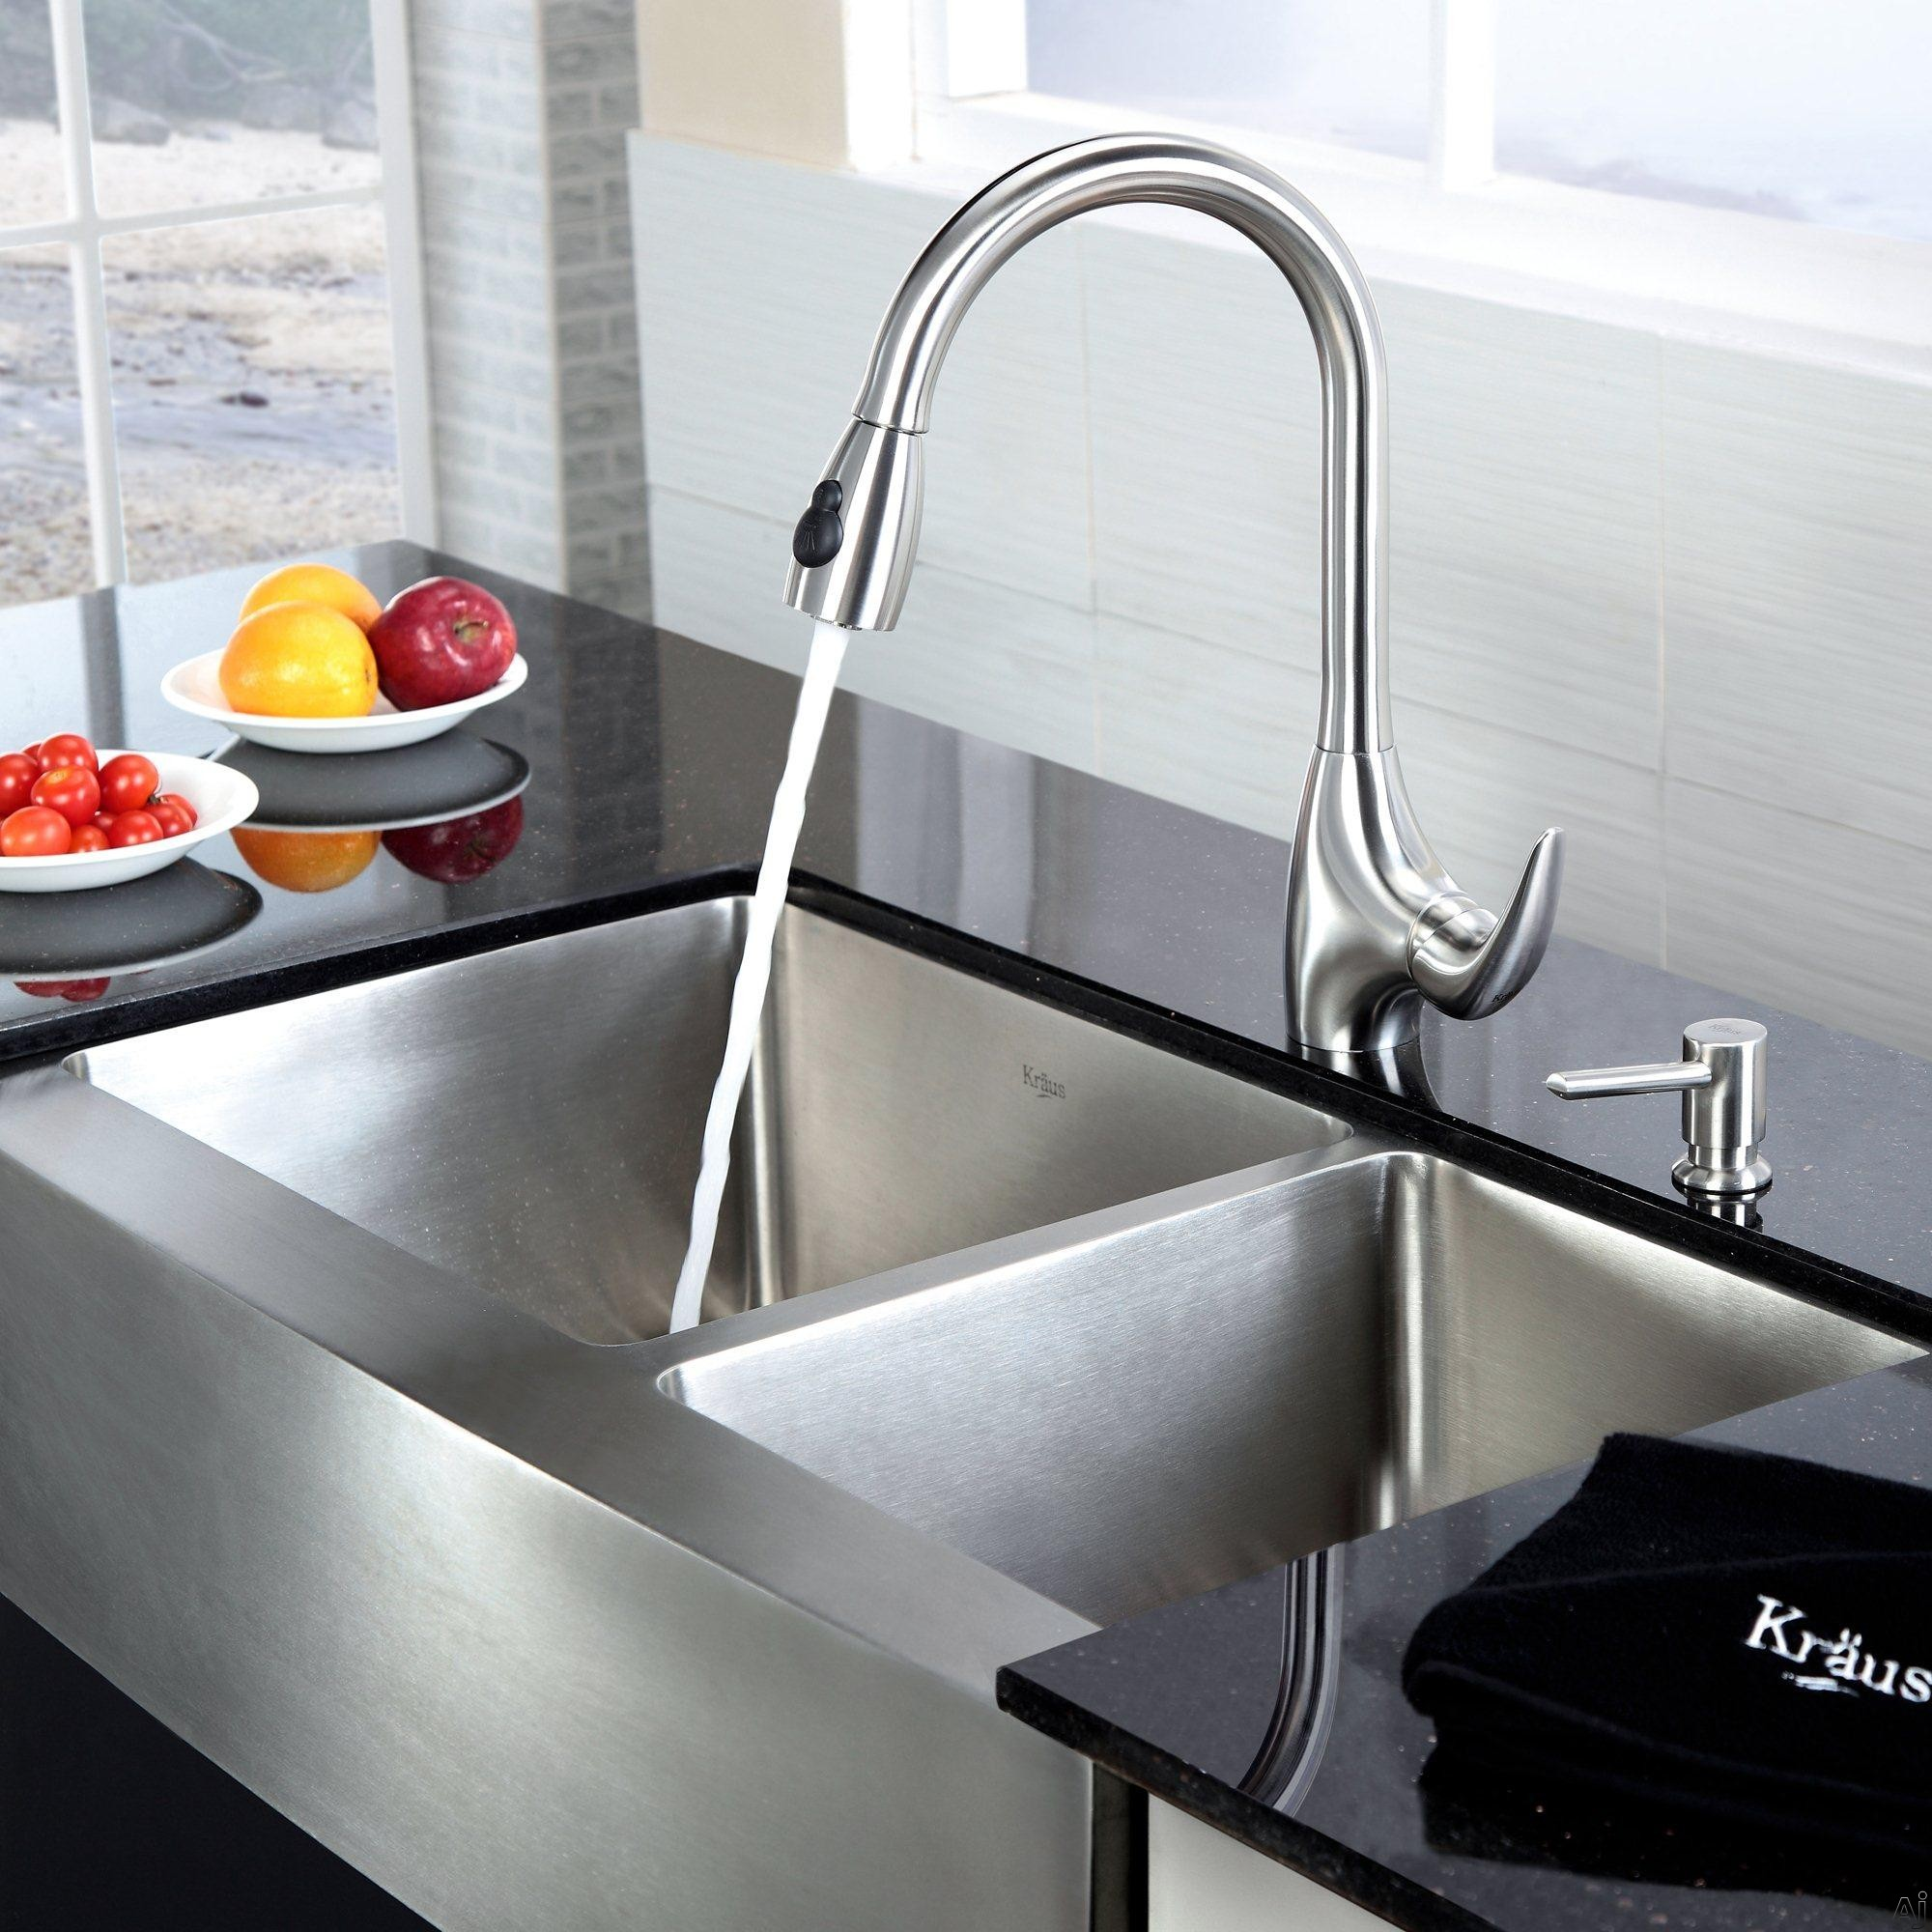 Farmhouse Double Bowl Sink : KHF20336KPF2170SD20 36 Inch Farmhouse Double Bowl Stainless Steel Sink ...